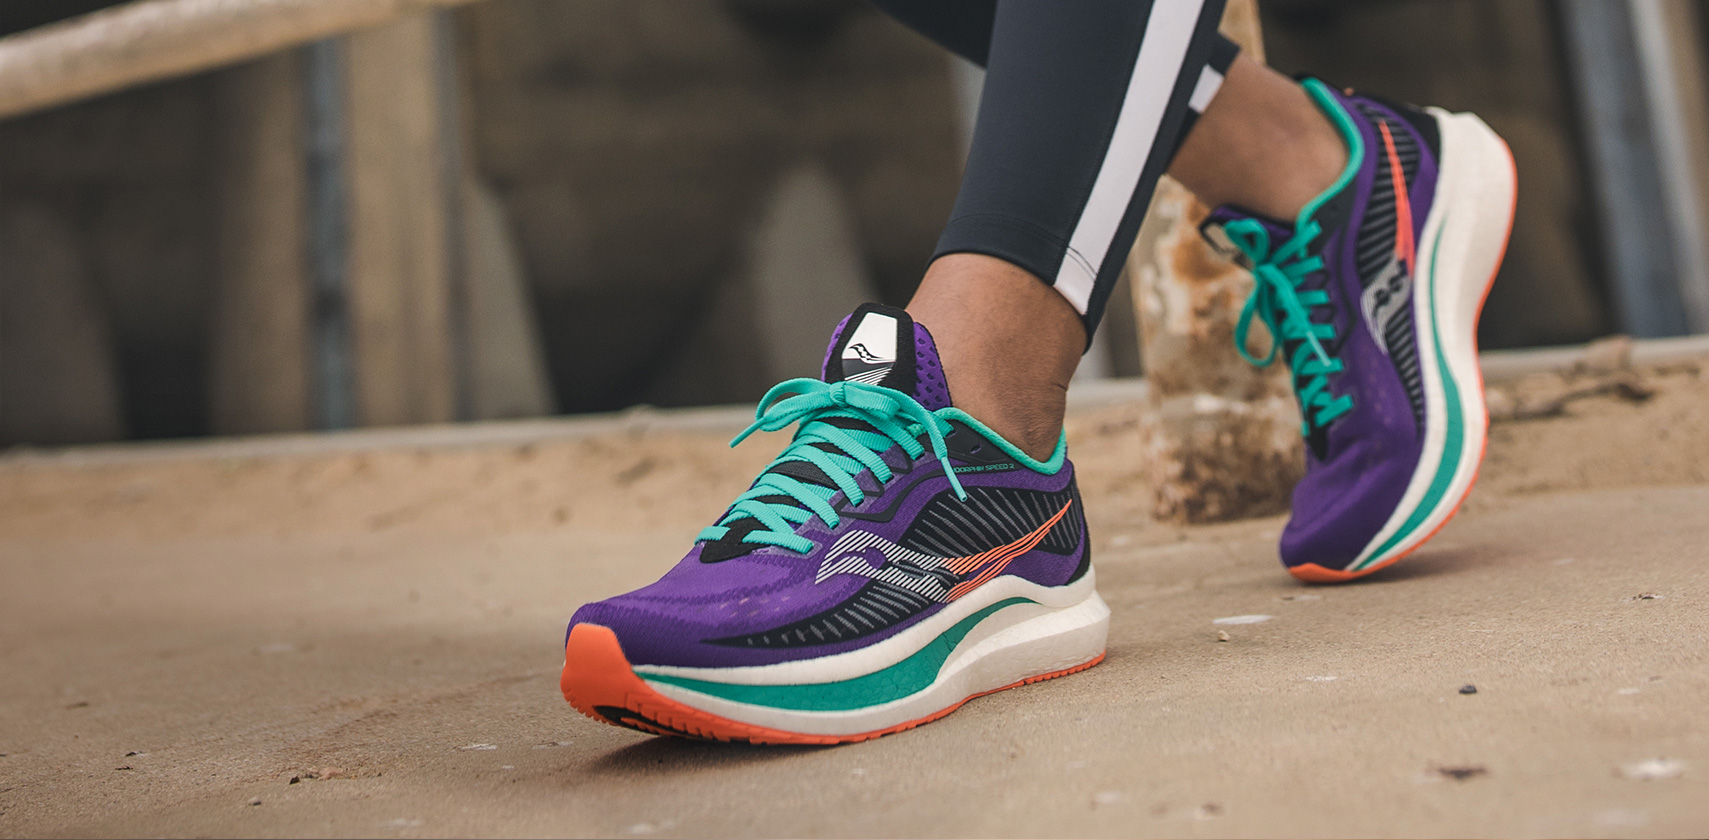 Endorphin running shoes.